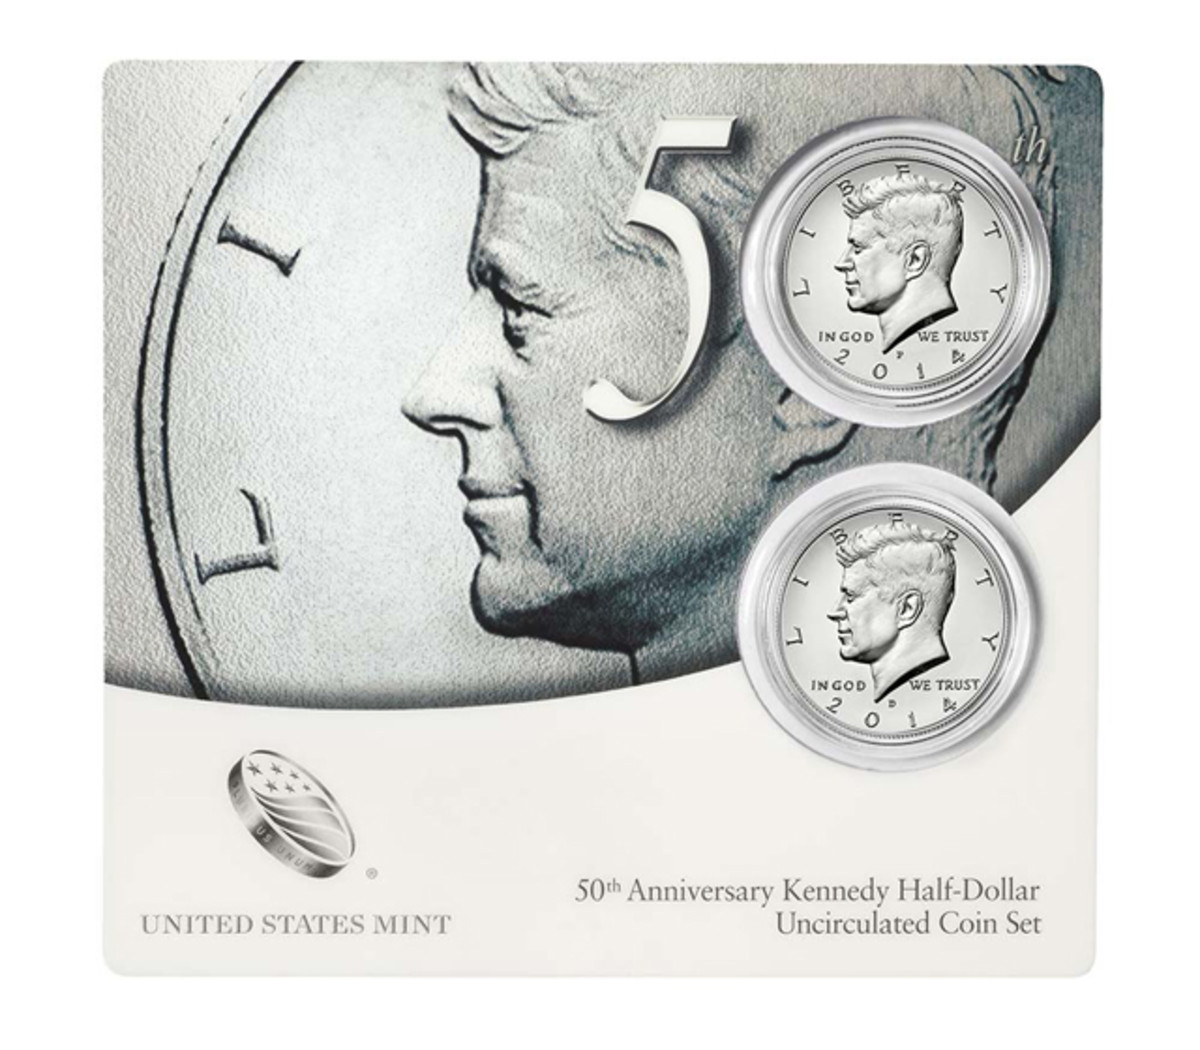 In terms of profit percentages, the uncirculated Kennedy half dollar set won 2014.